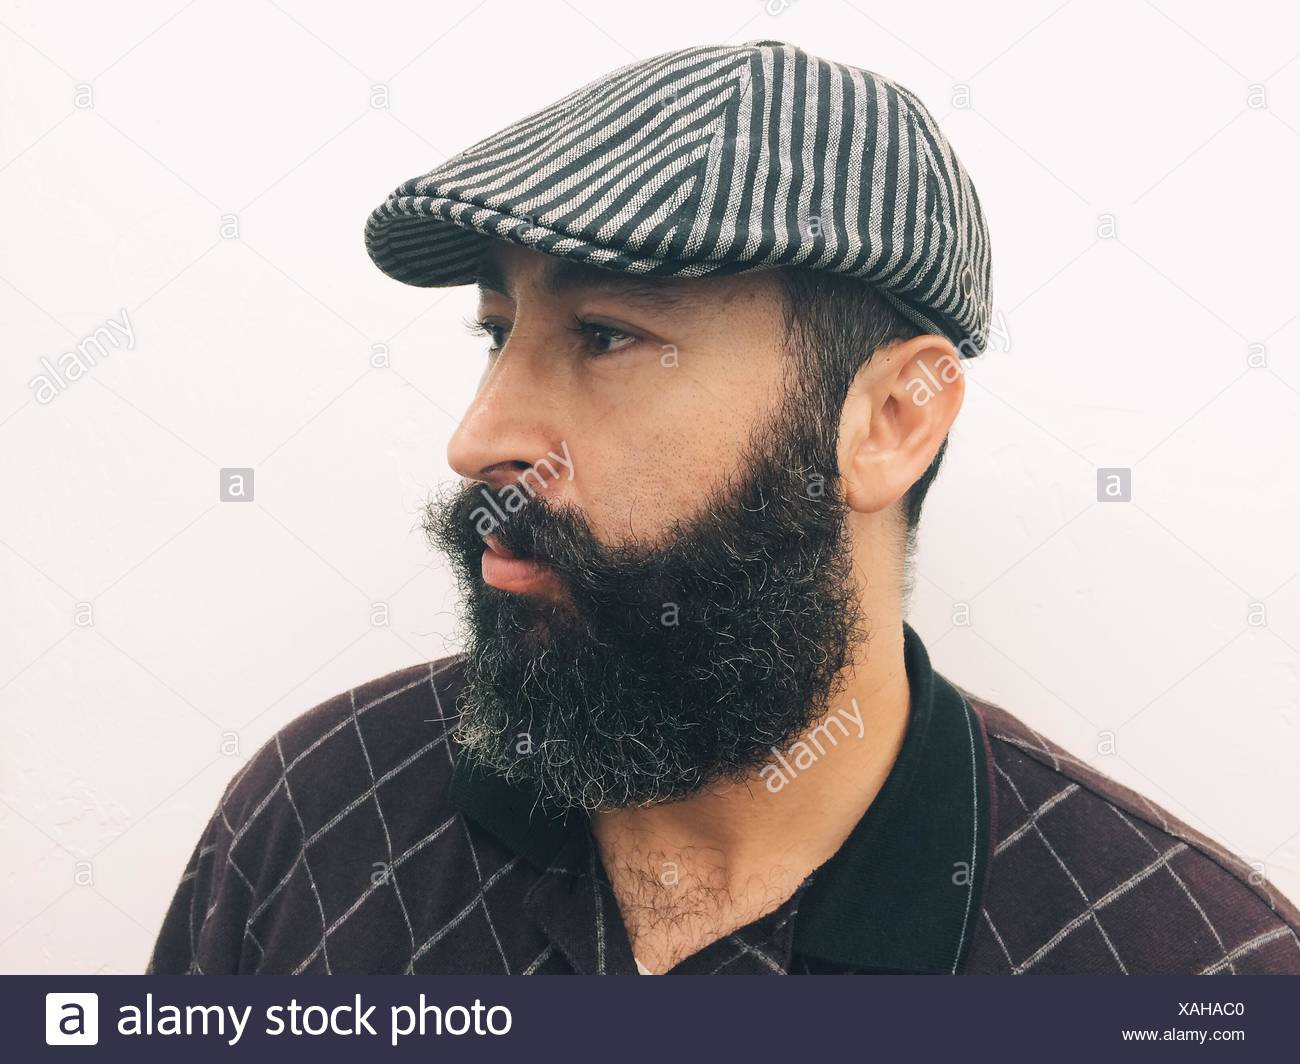 Side View Of Mature Man With Beard Wearing Hat Against White Background - Stock Image